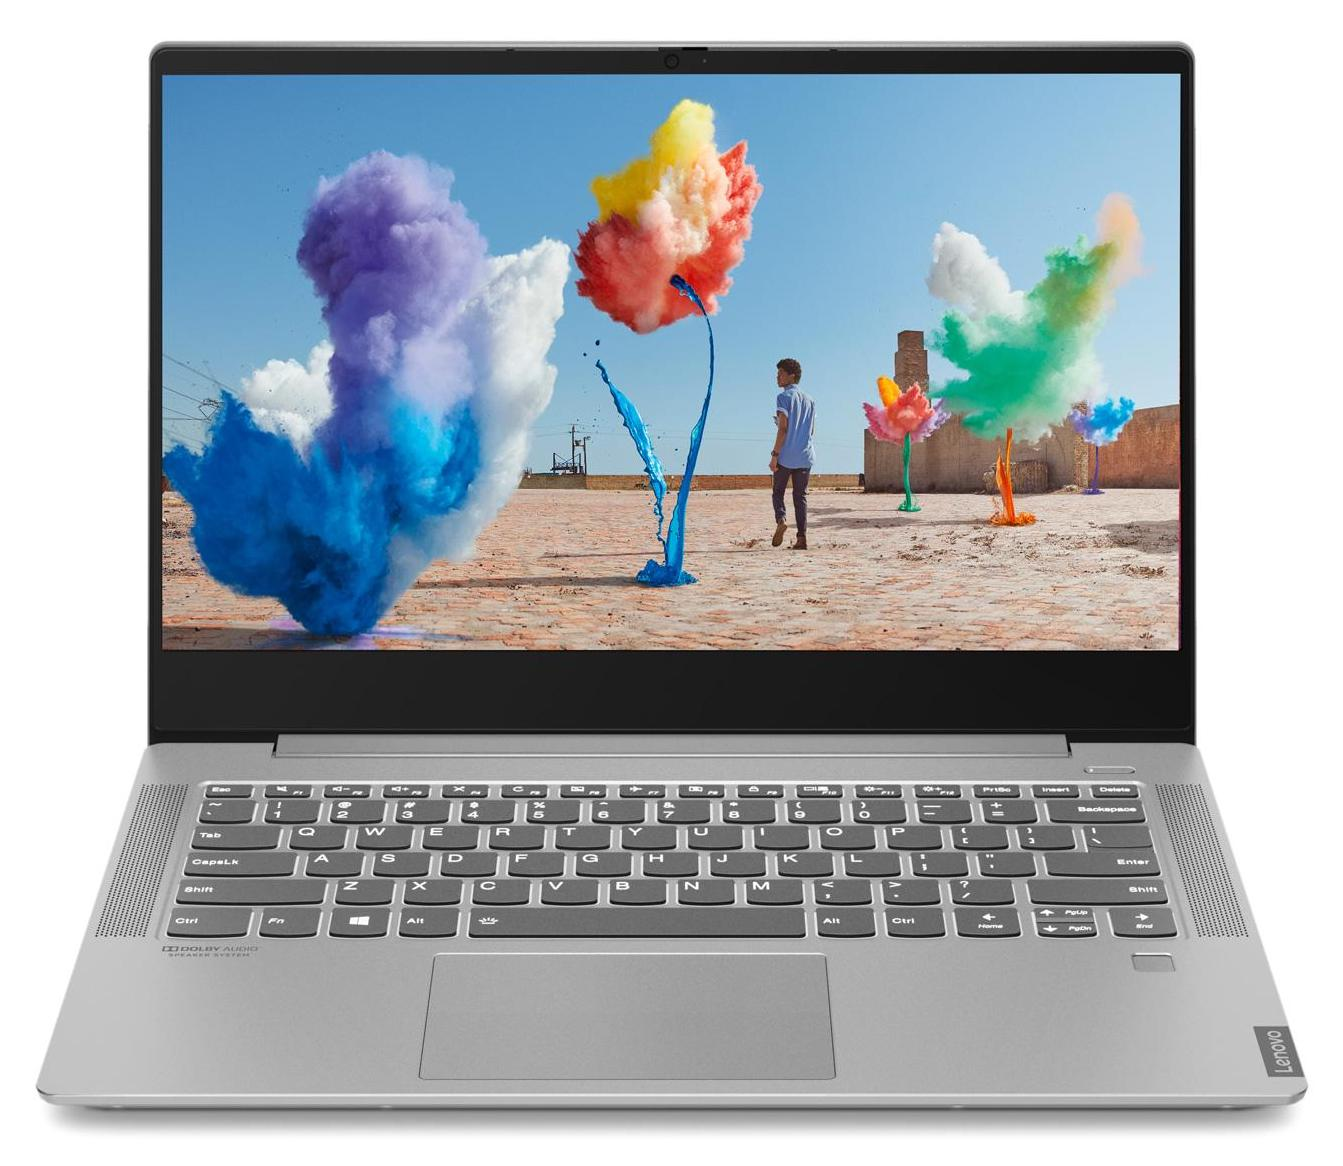 Lenovo IdeaPad S540-14IWL, ultrabook 14 pouces rapide (791€)